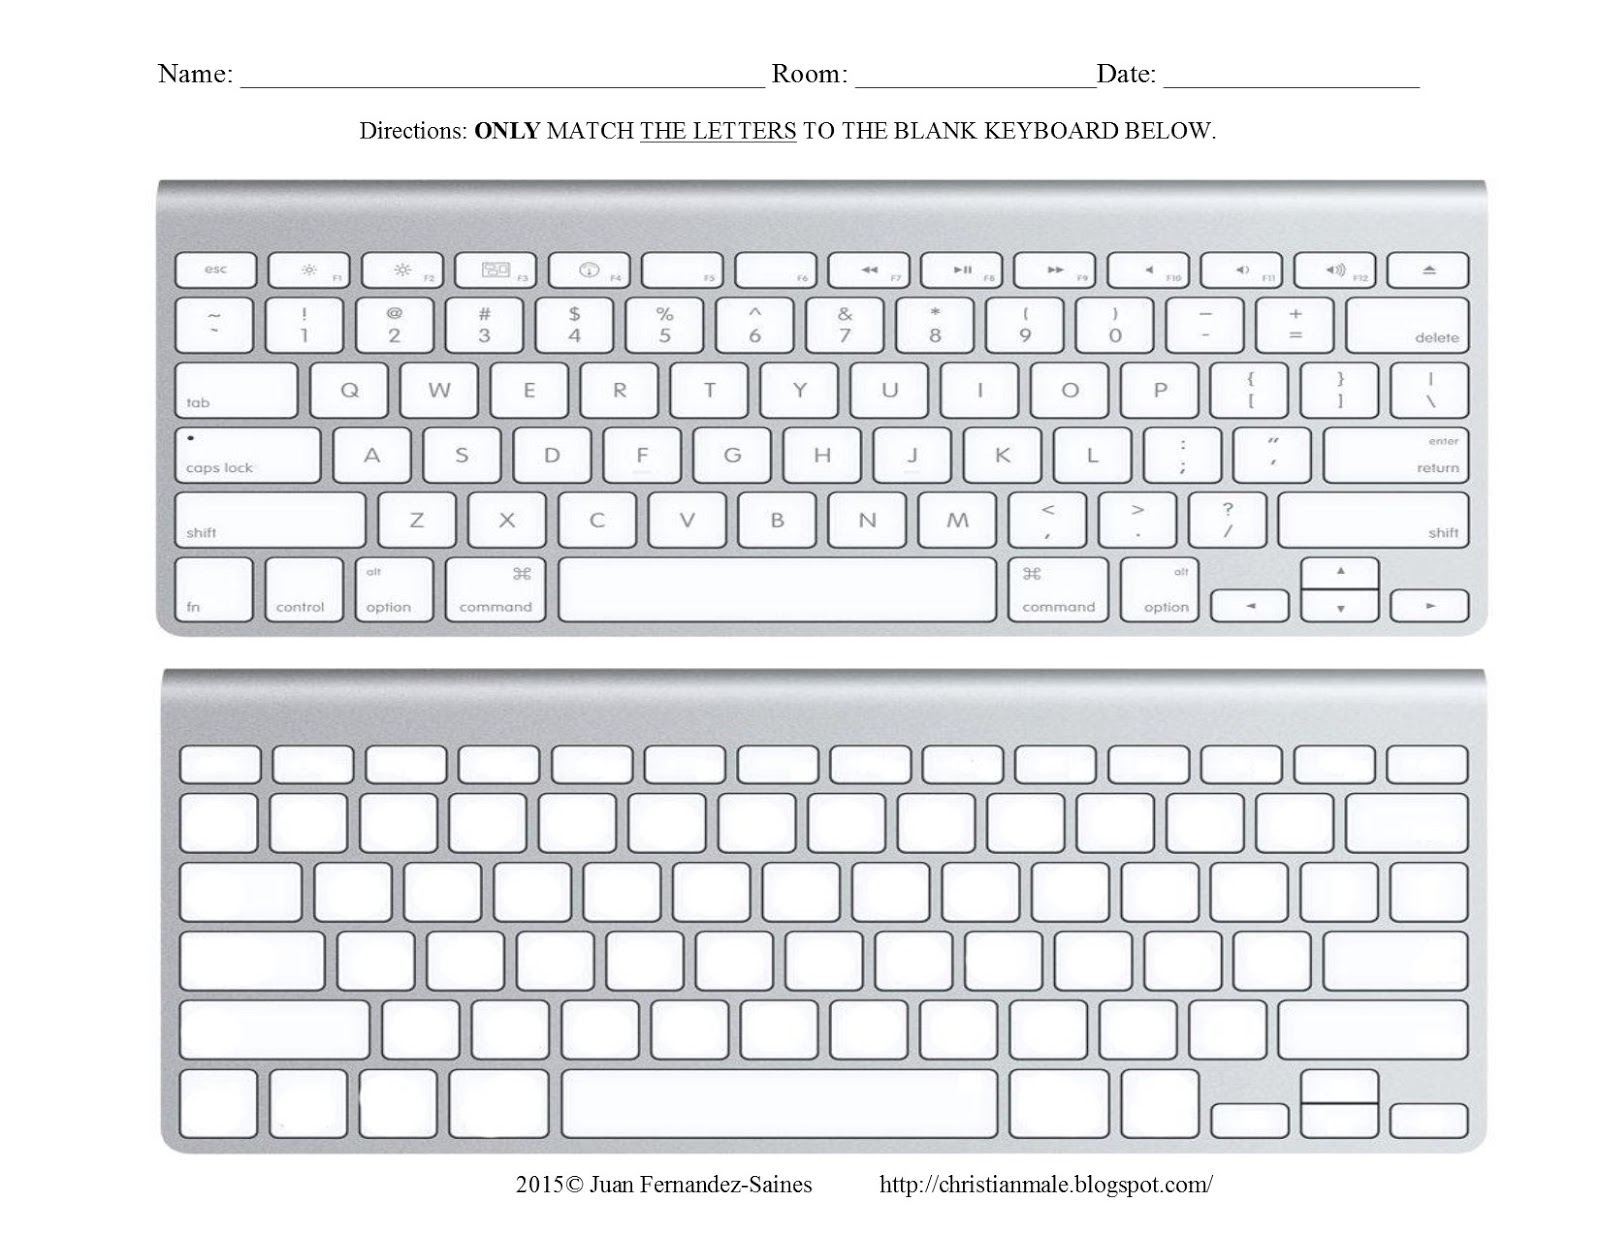 worksheet Keyboarding Worksheets worksheets blank computer keyboard worksheet atidentity com free christian malehombre